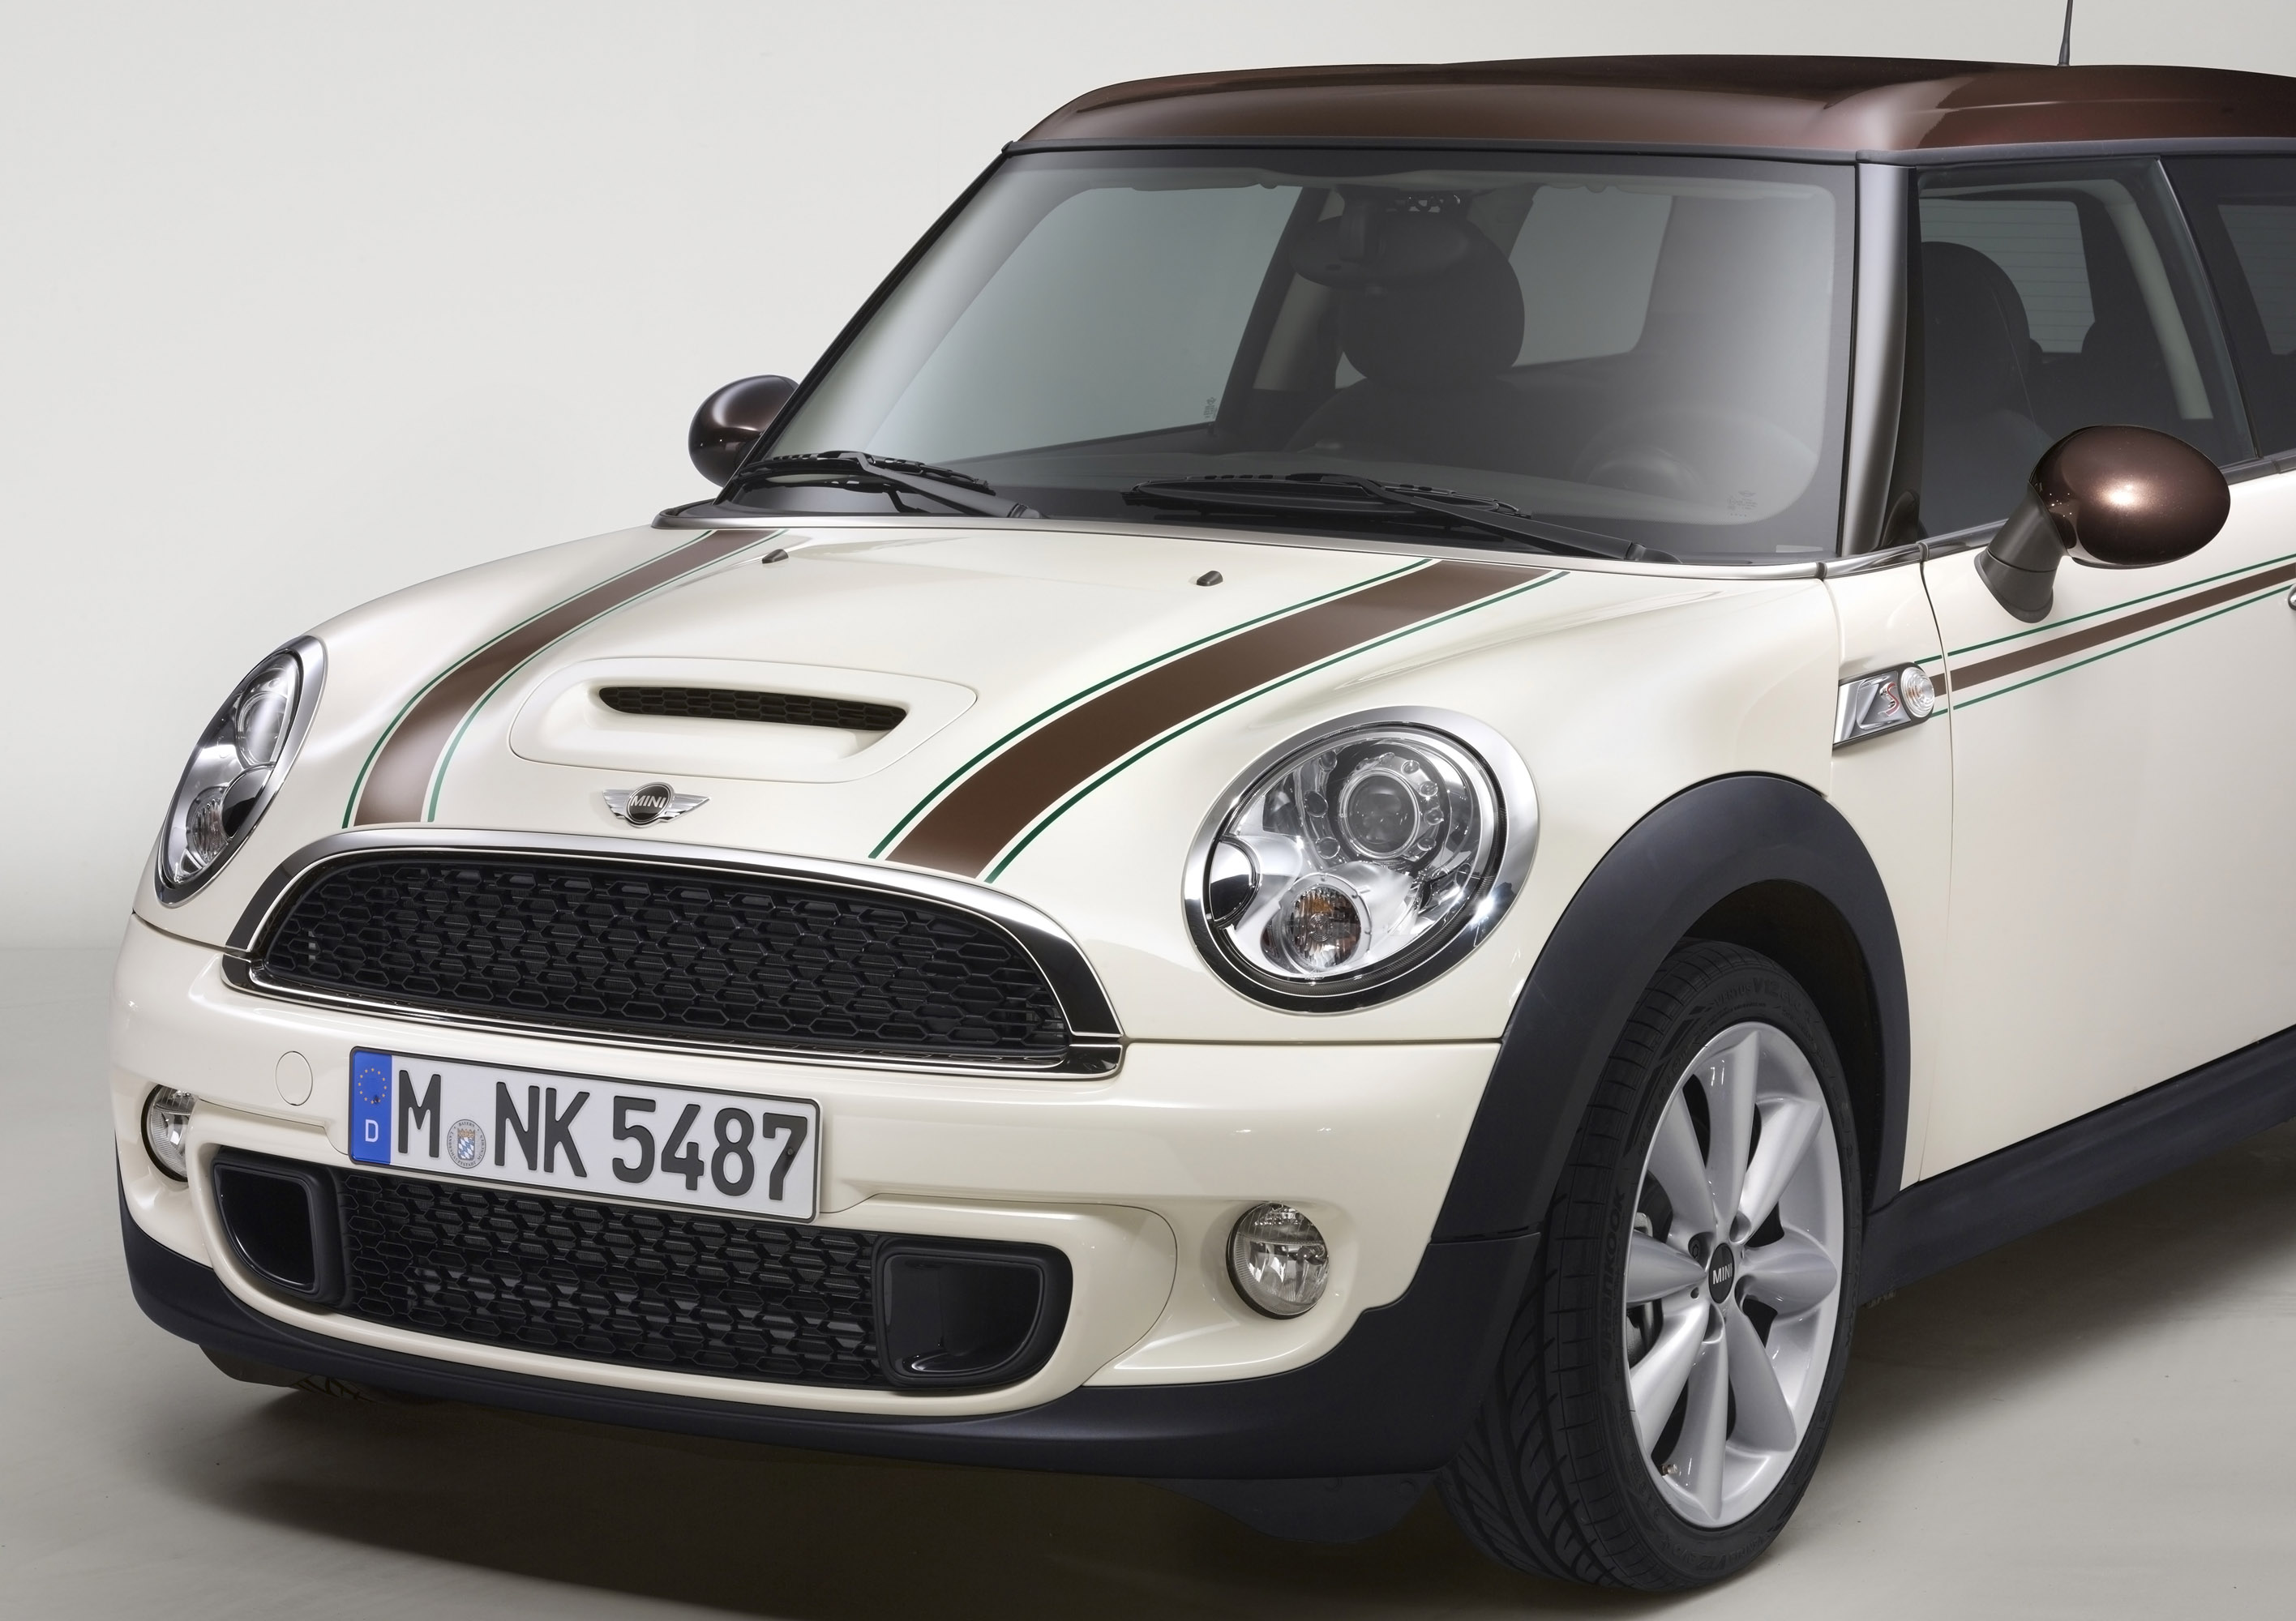 2012 mini clubman hyde park and mini green park offer style and excitement. Black Bedroom Furniture Sets. Home Design Ideas